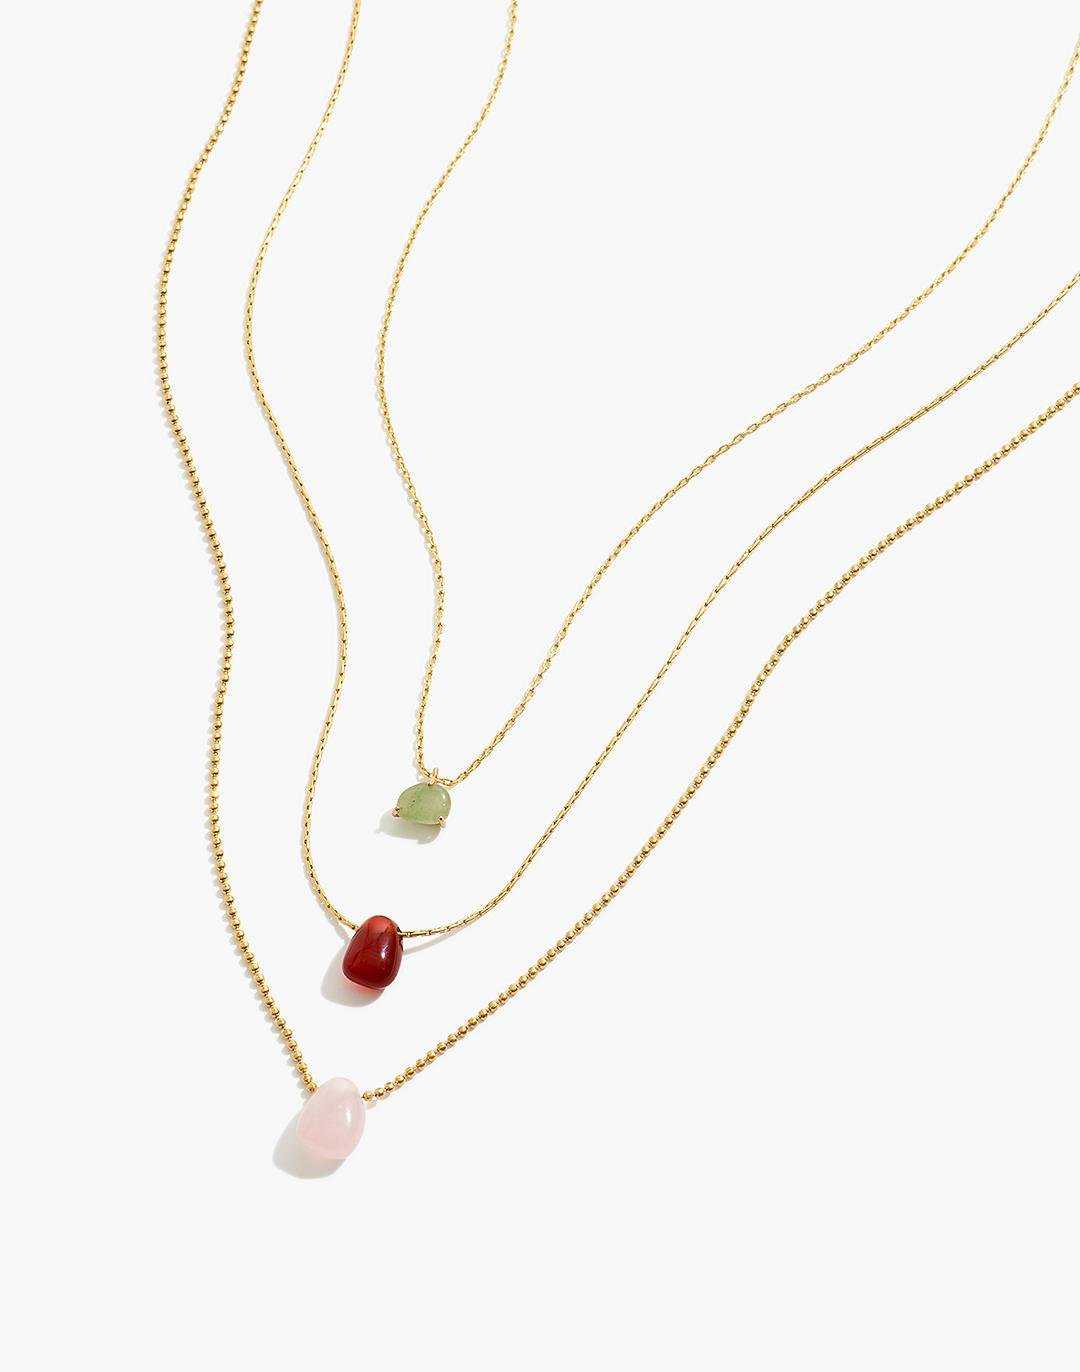 Stone Collection Necklace Set